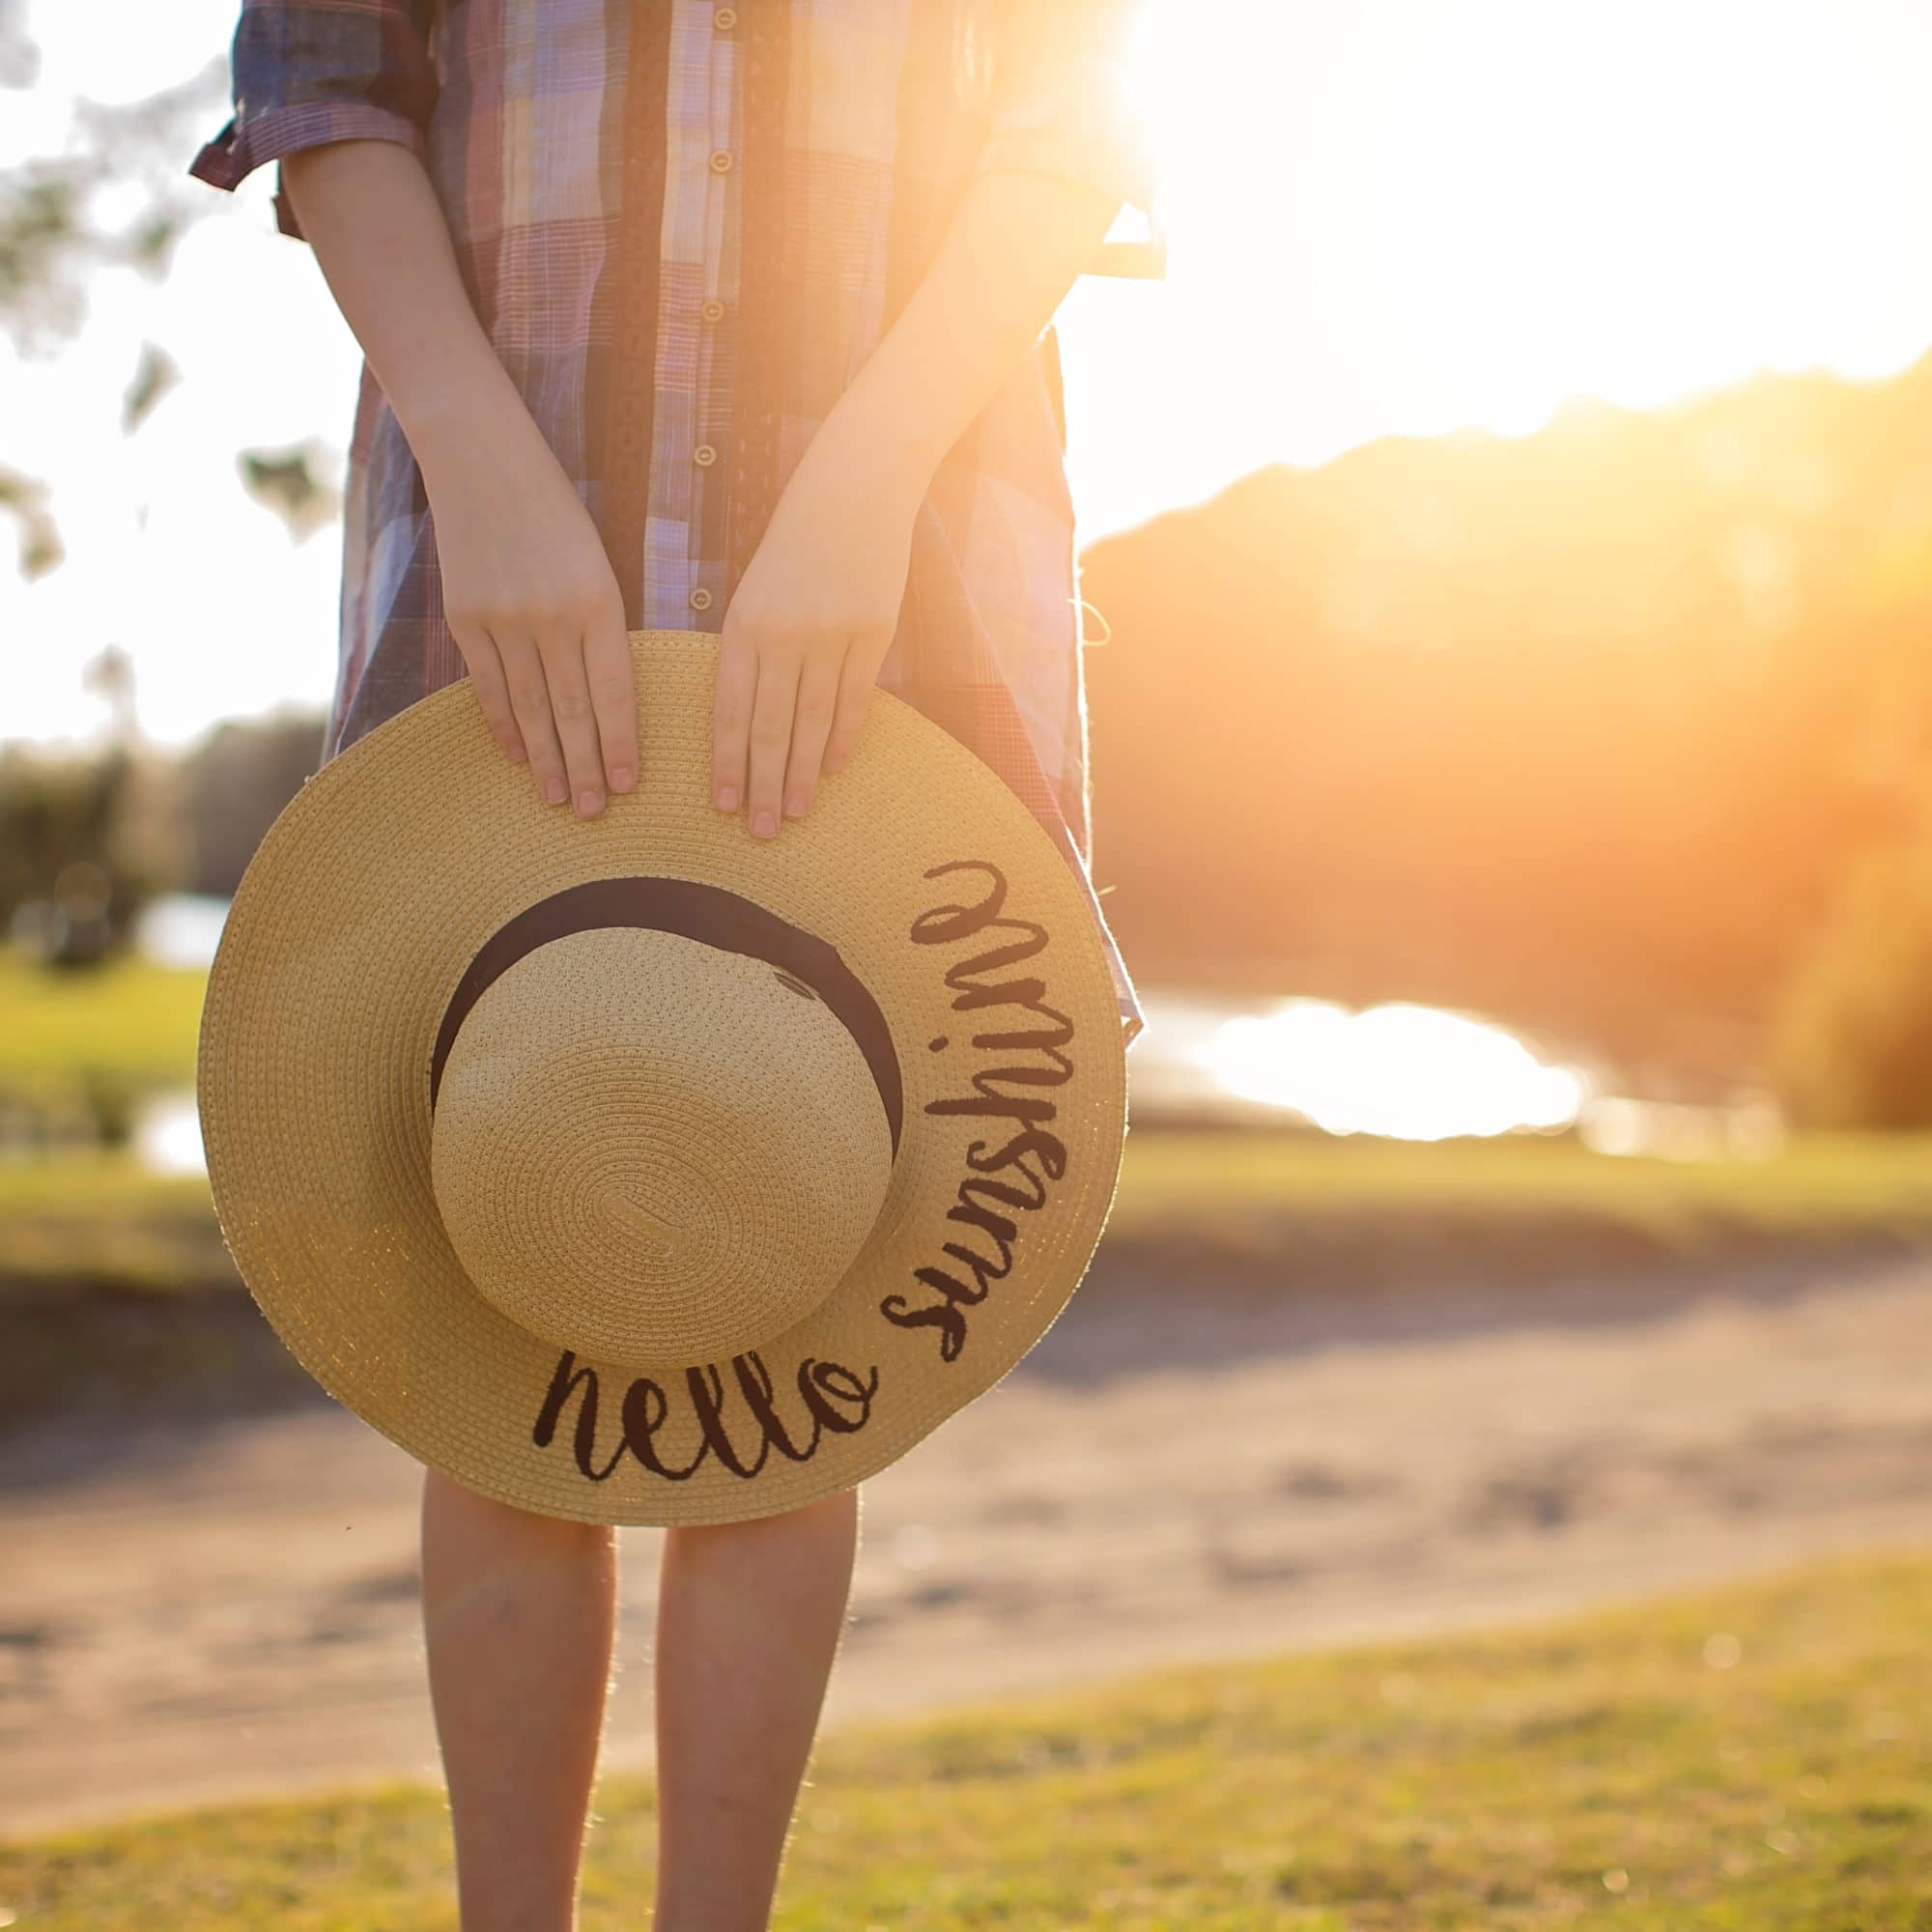 Stock image of girl holding sun hat with a sun flare in the background for a blog about escaping to little Gasparilla Island